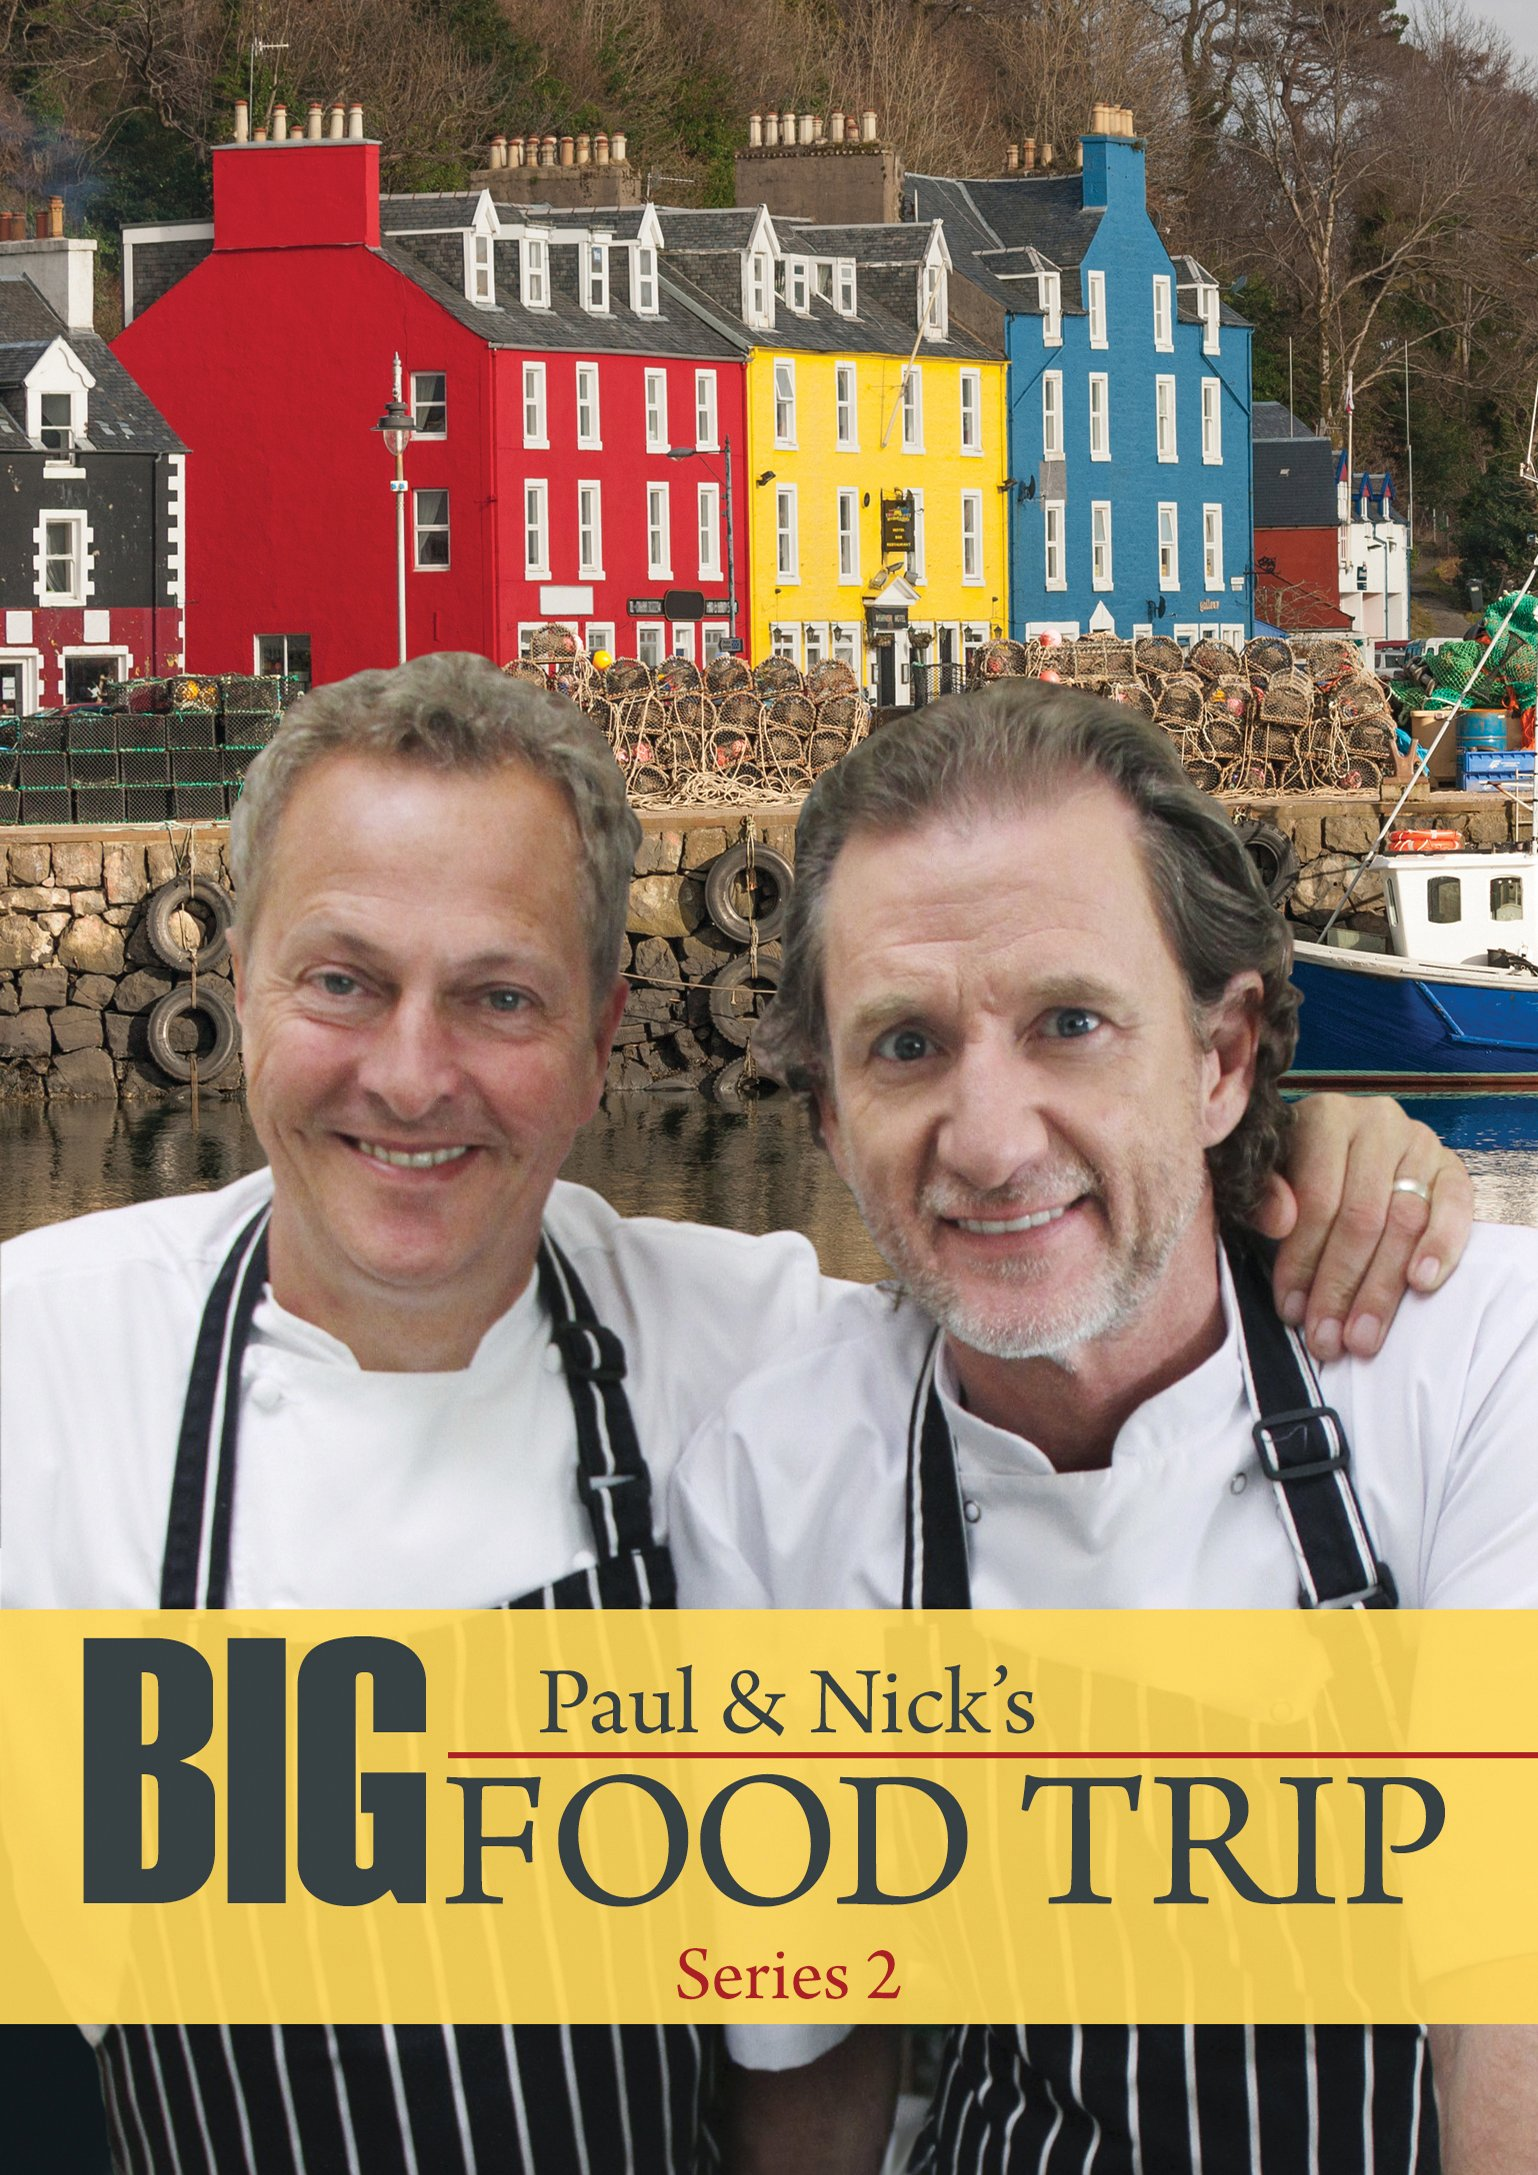 Paul & Nick's Big Food Trip (series 2) by Dreamscape Media